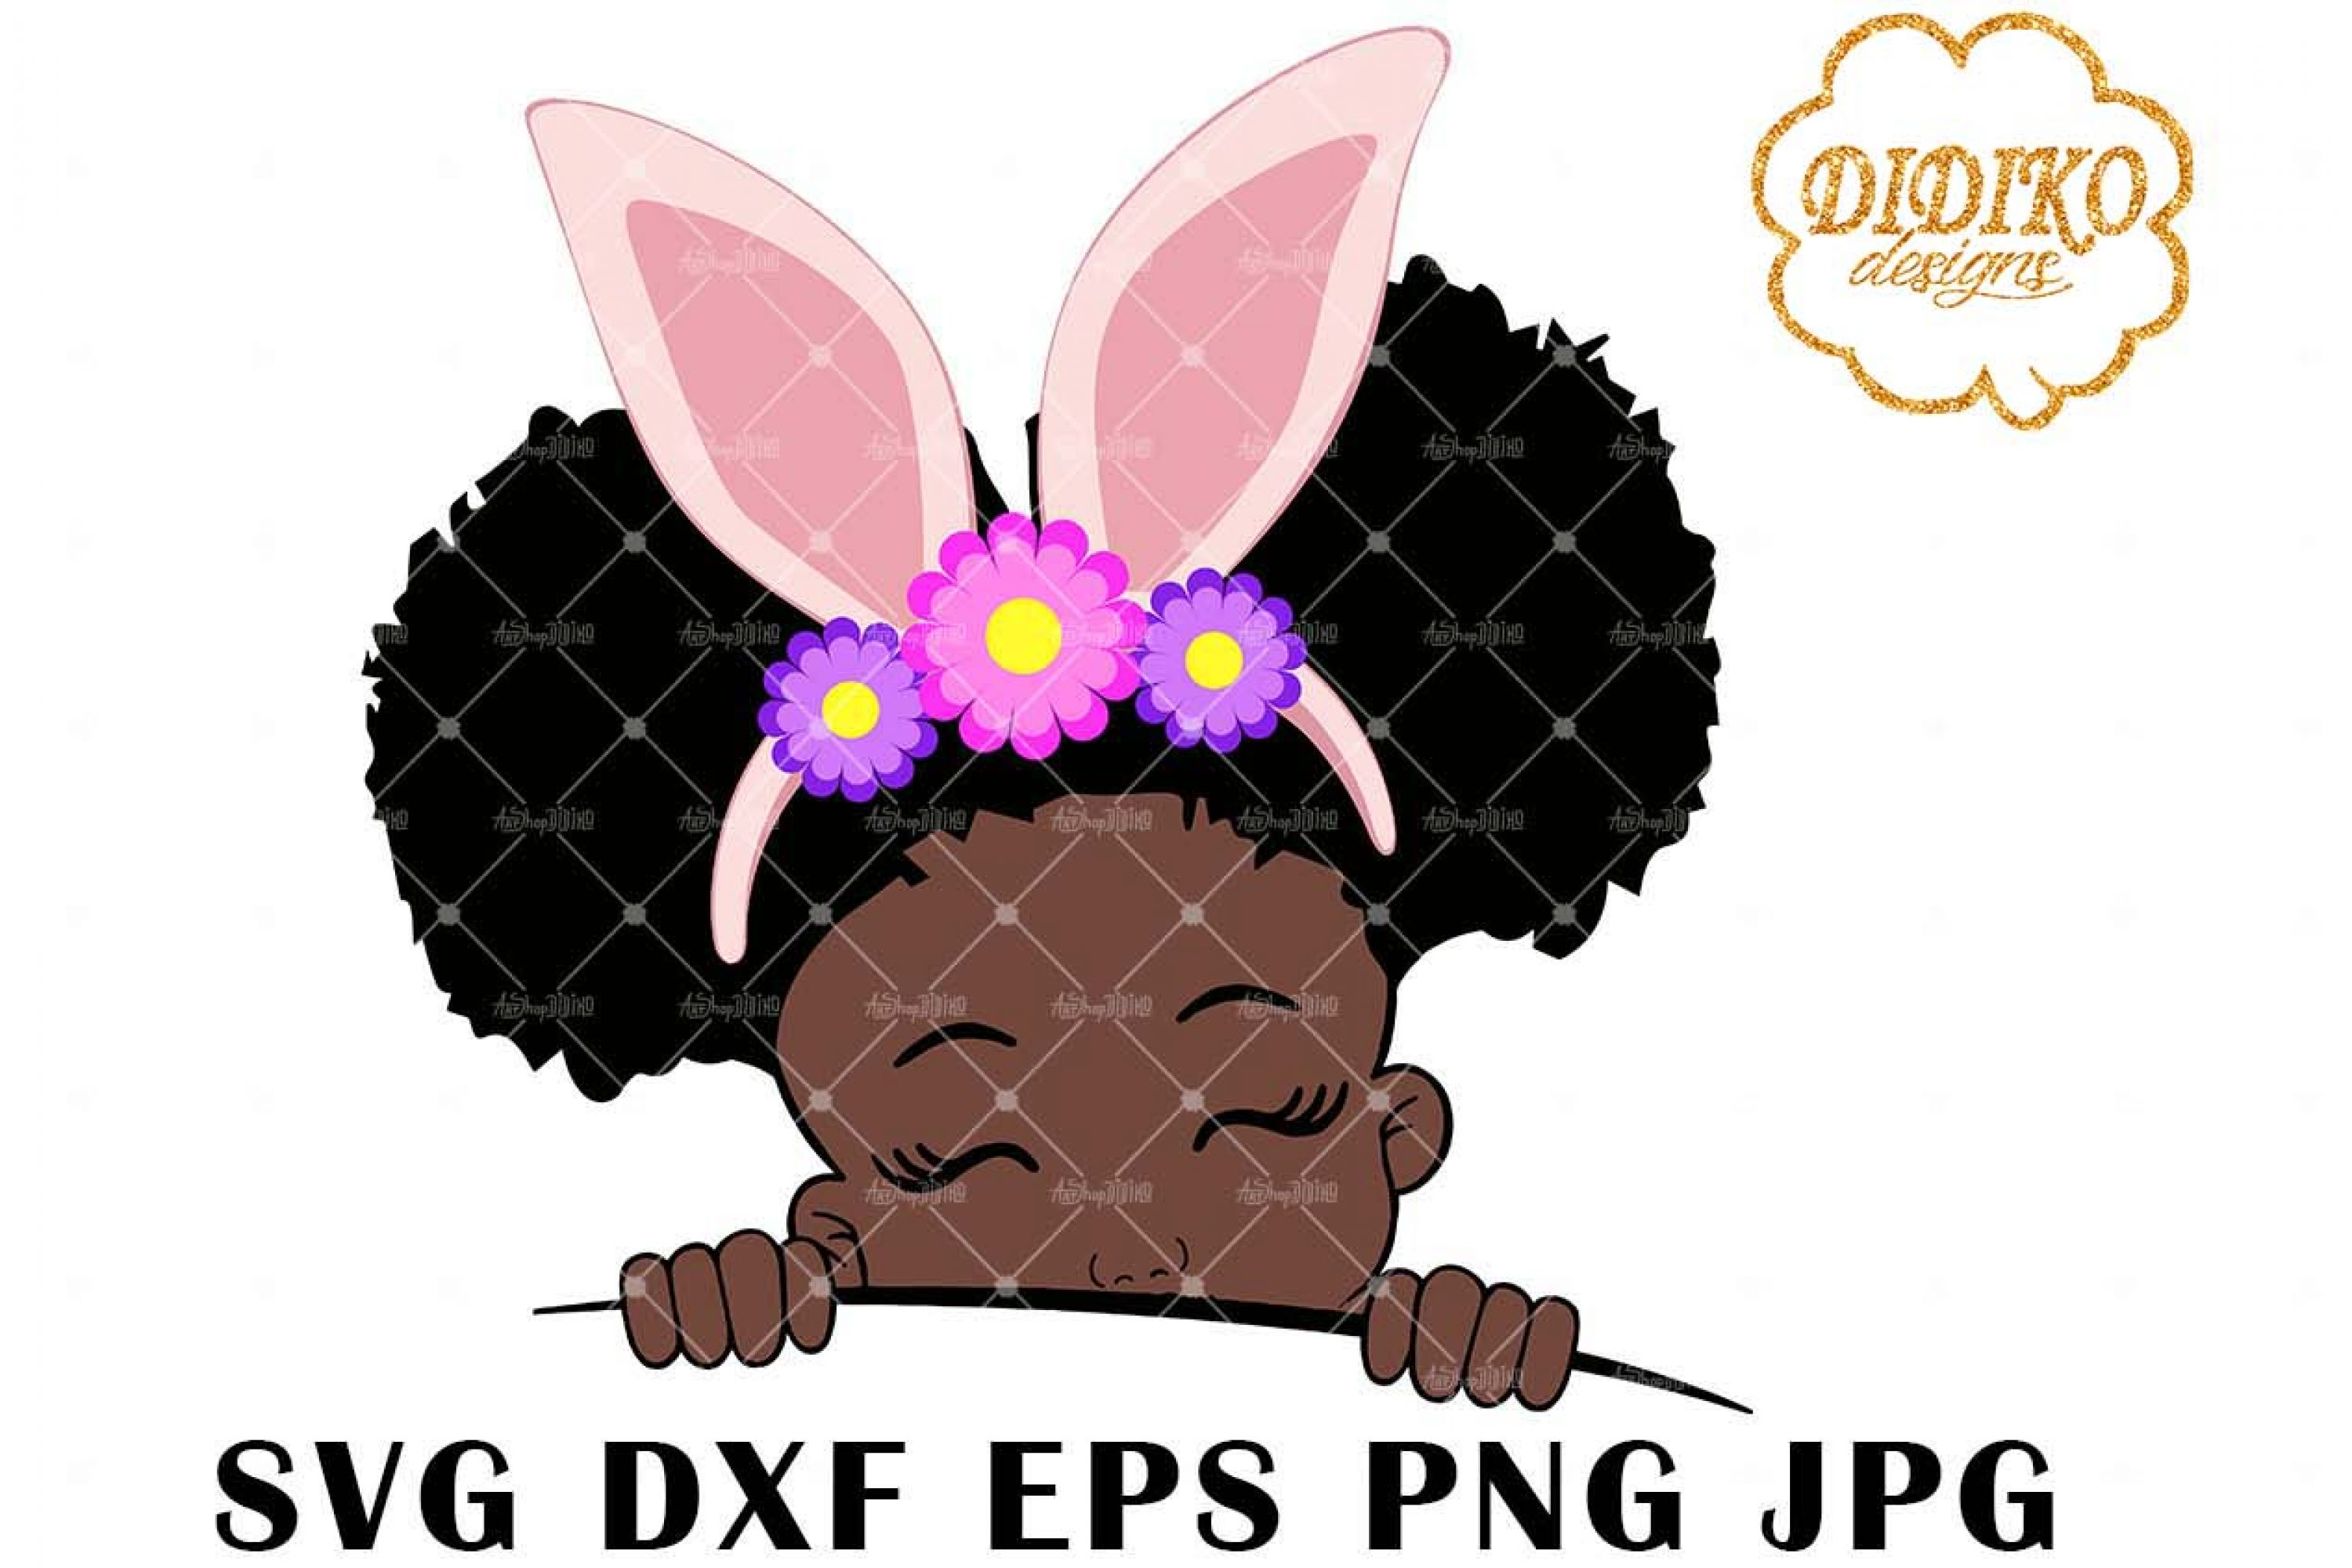 Afro Easter Girl Peek A Boo 1 SVG, Afro Puff SVG